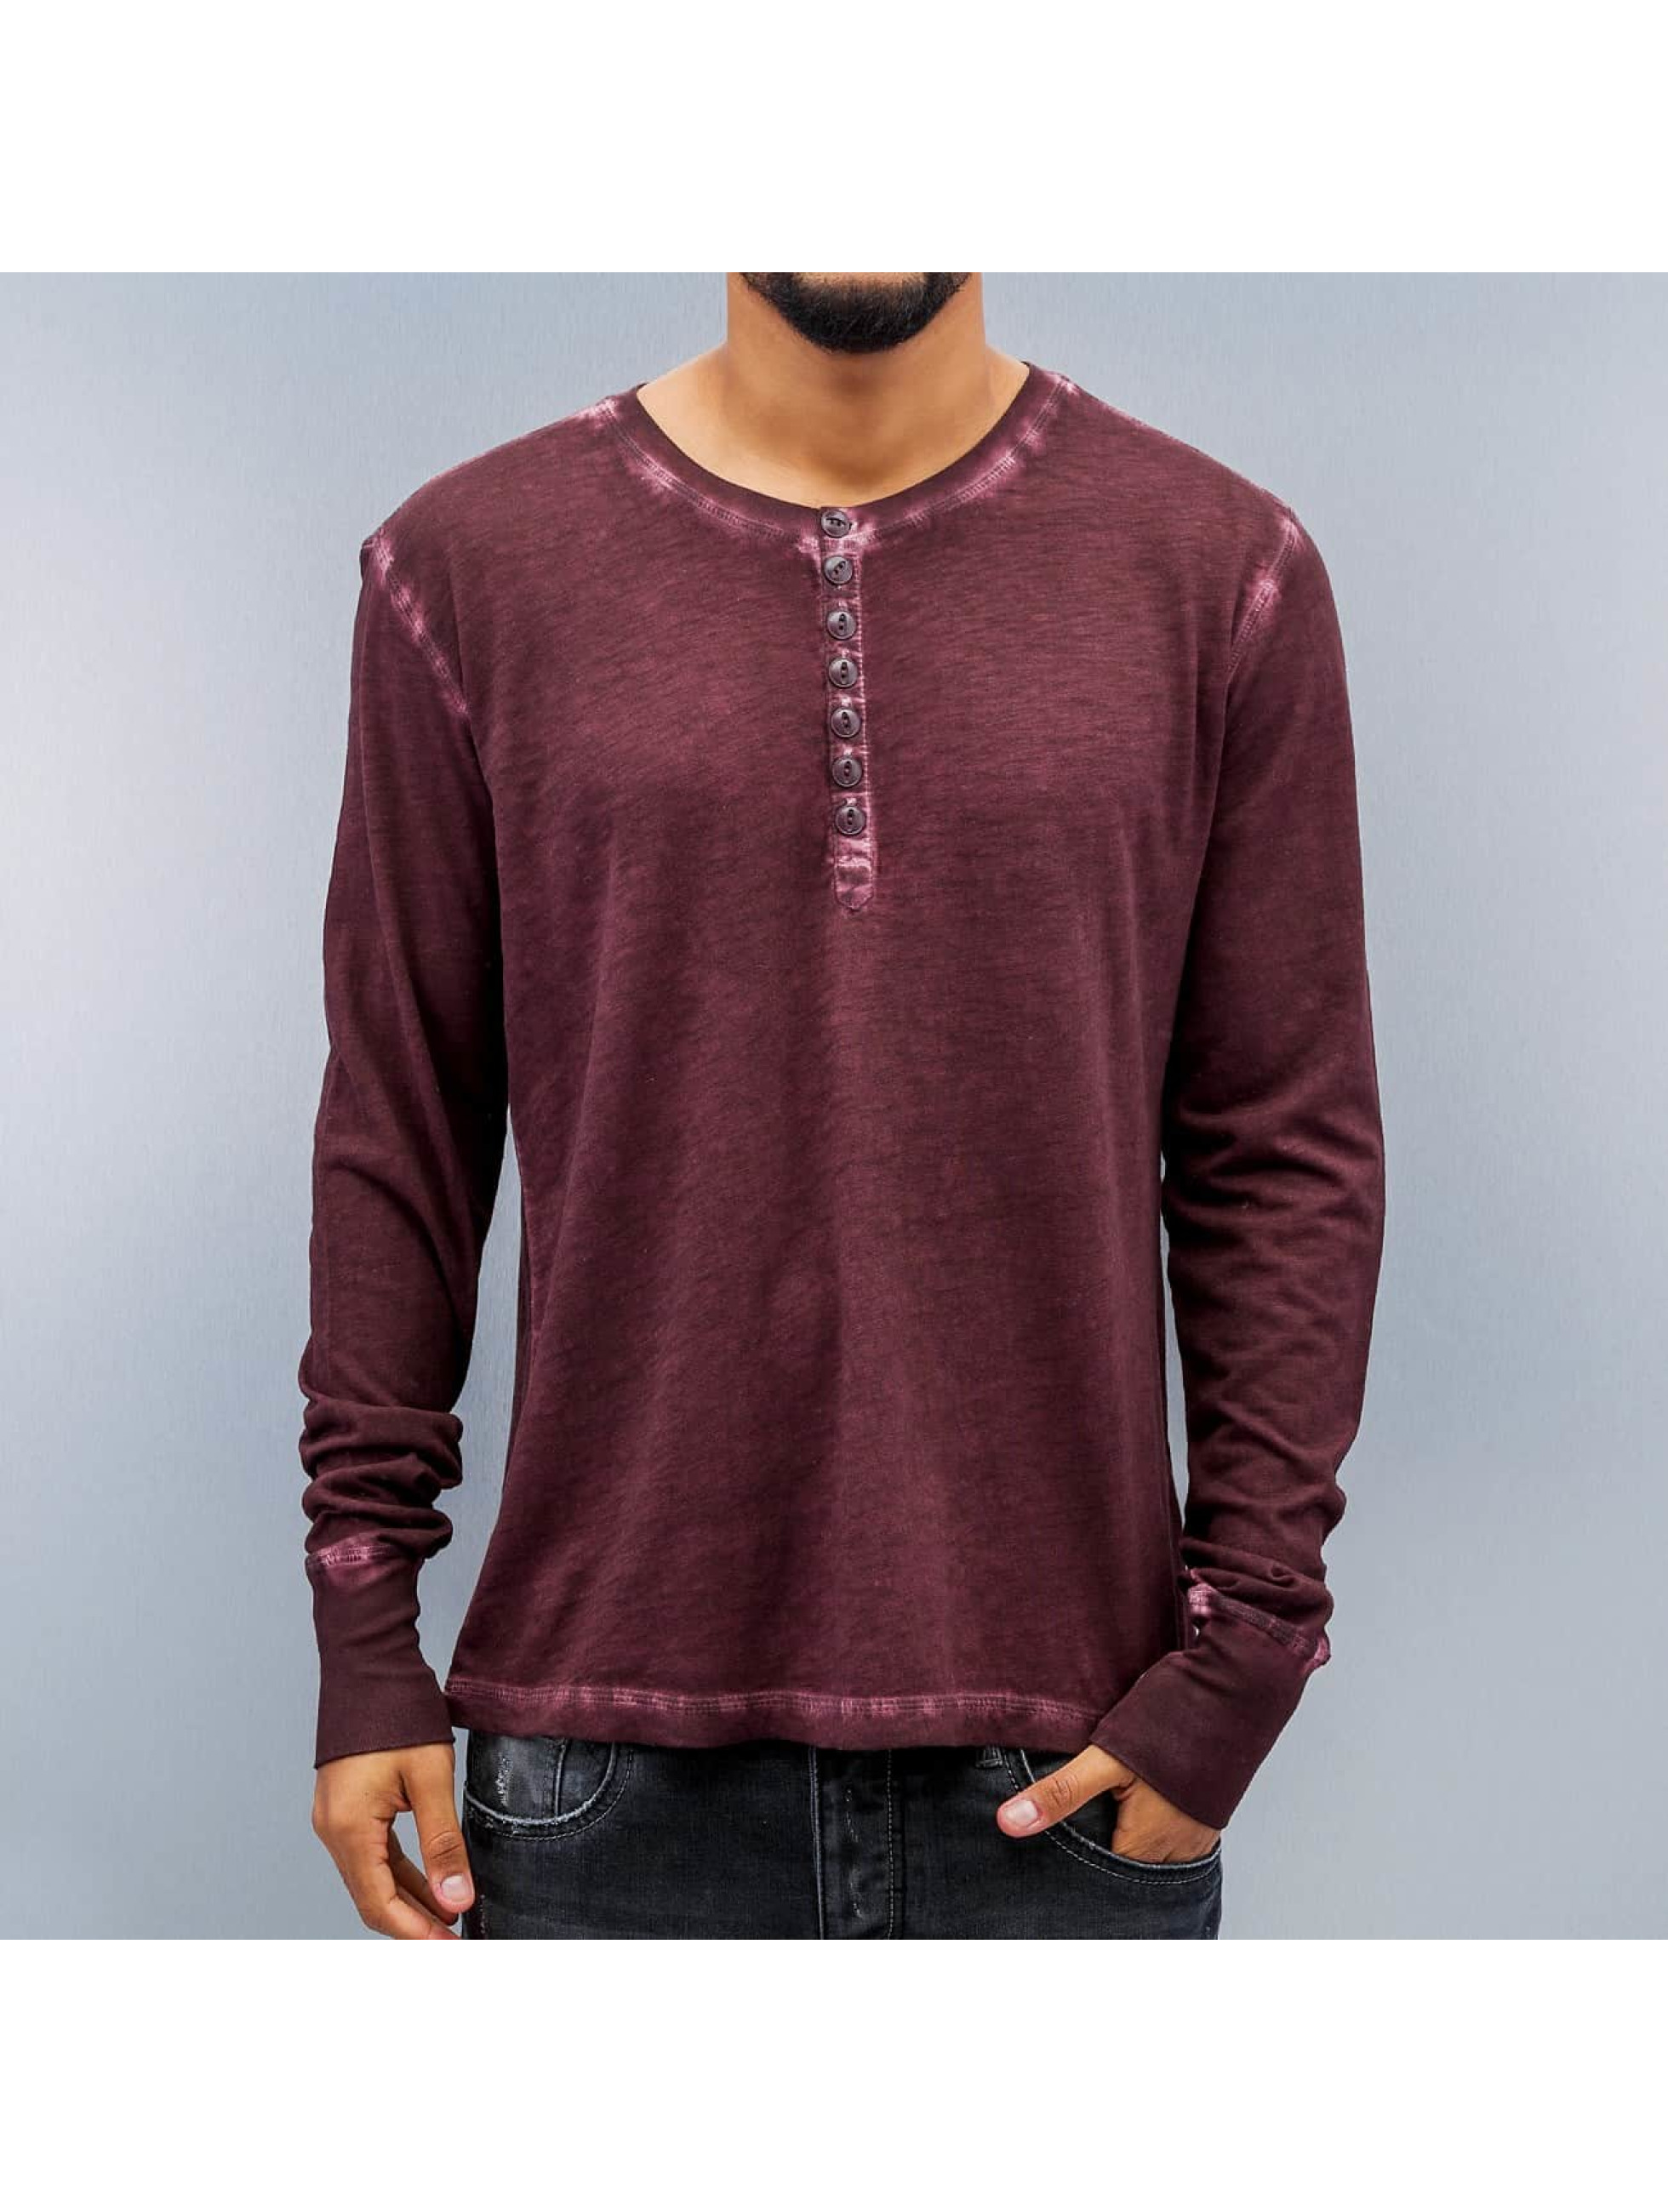 Amsterdenim Longsleeve Jeen Bridge red